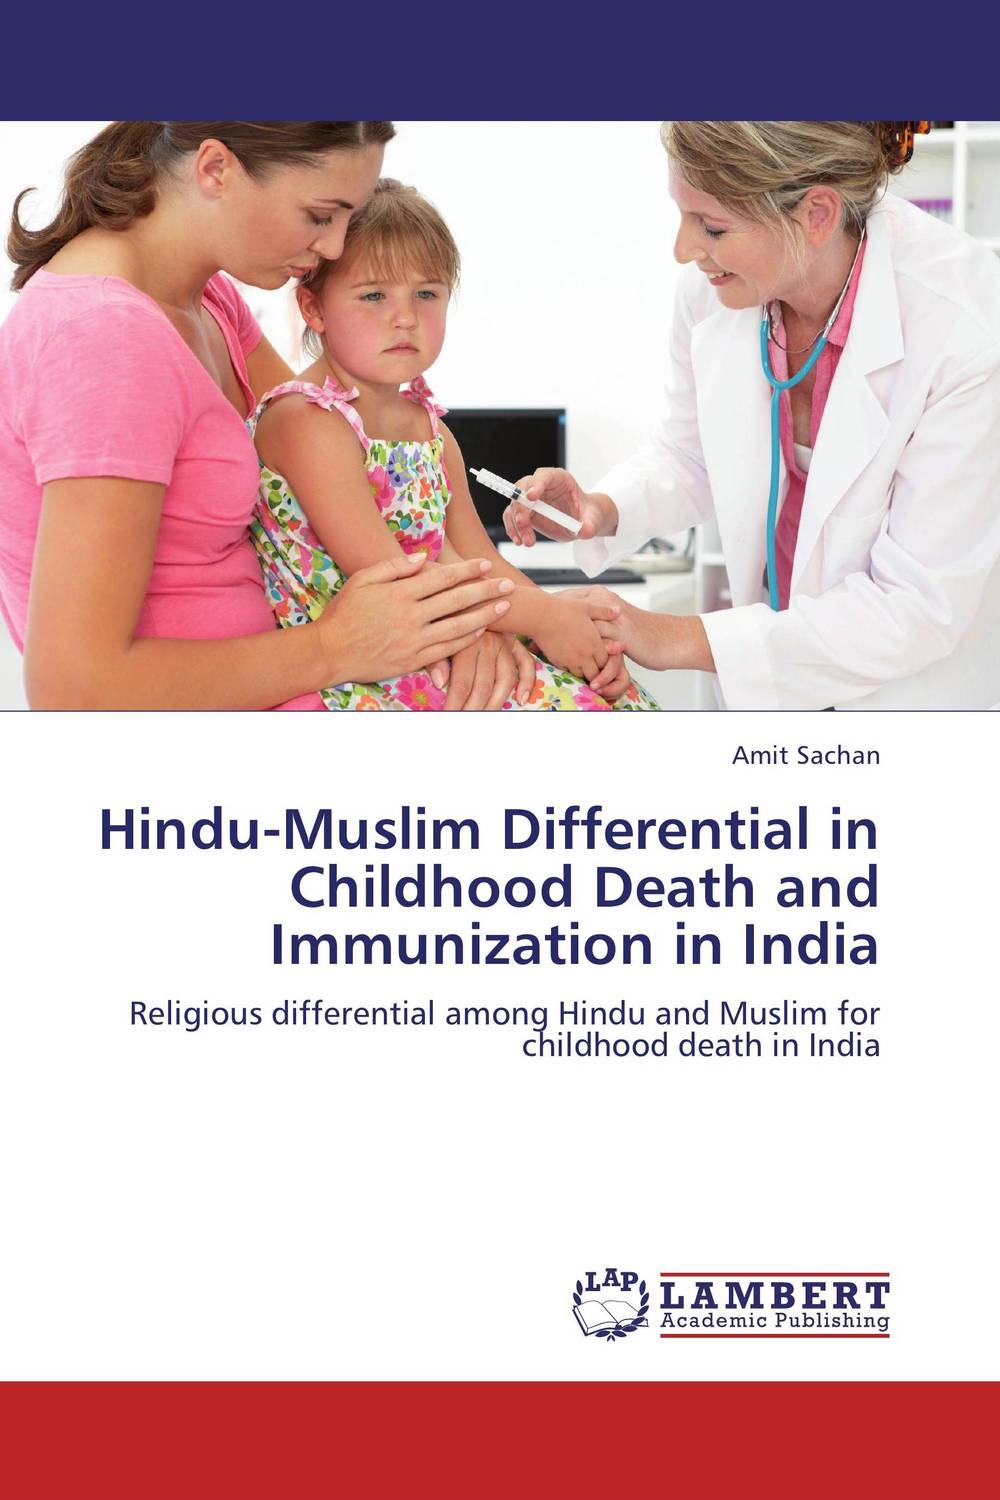 Hindu-Muslim Differential in Childhood Death and Immunization in India  shenniu tractor parts the sn250 sn254 differential axle part number 25 39 103